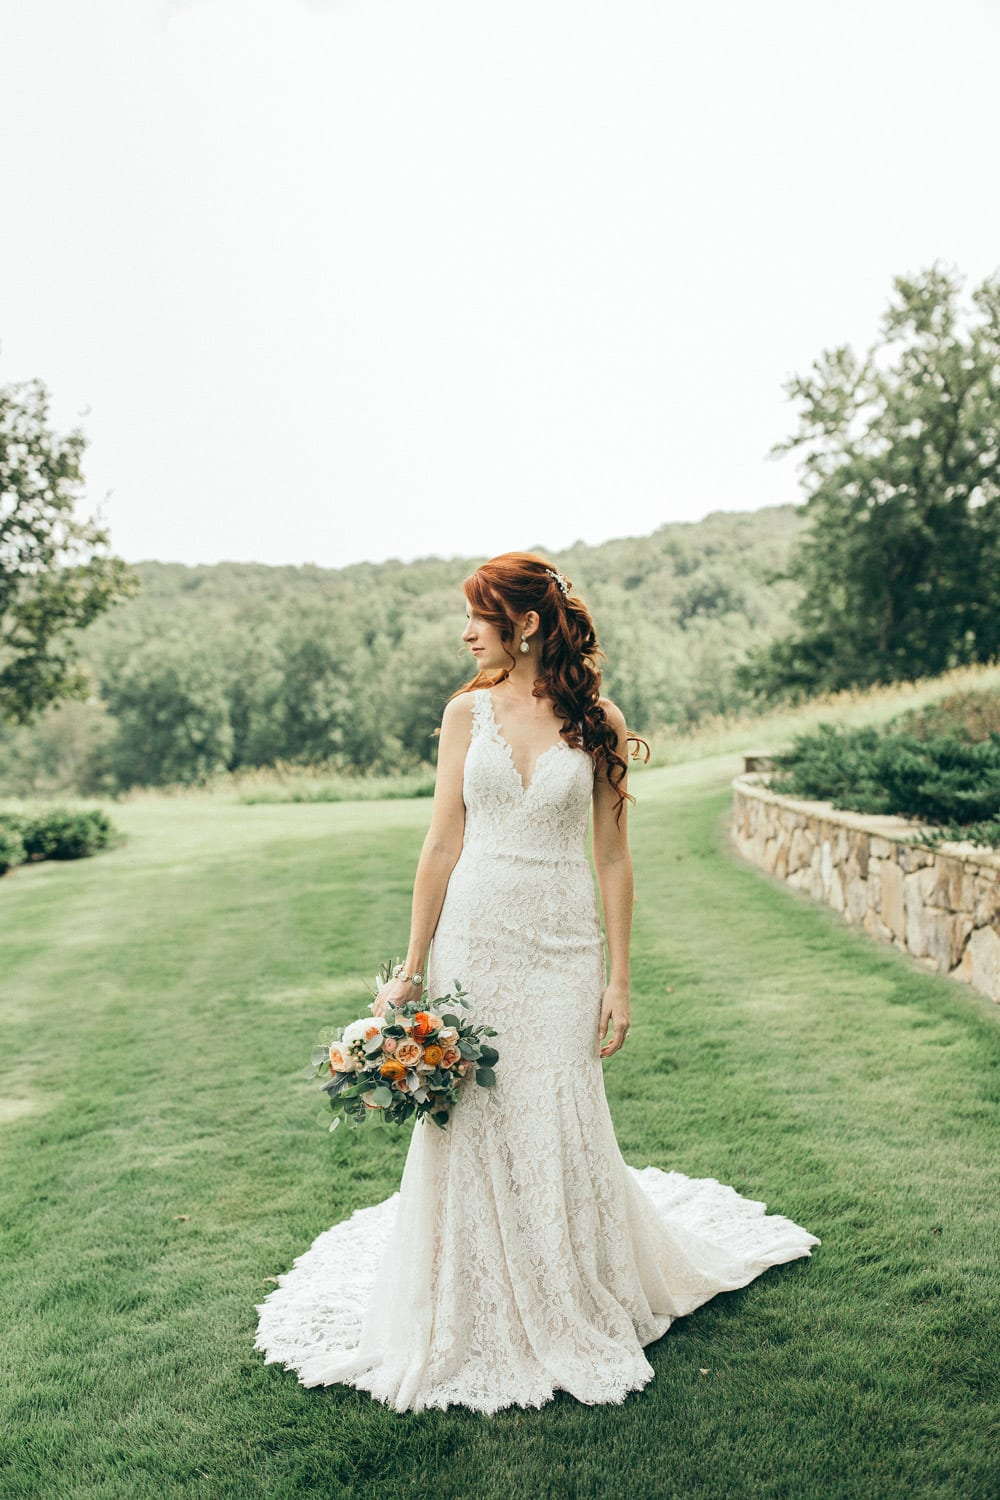 Bride stands outside with flowers